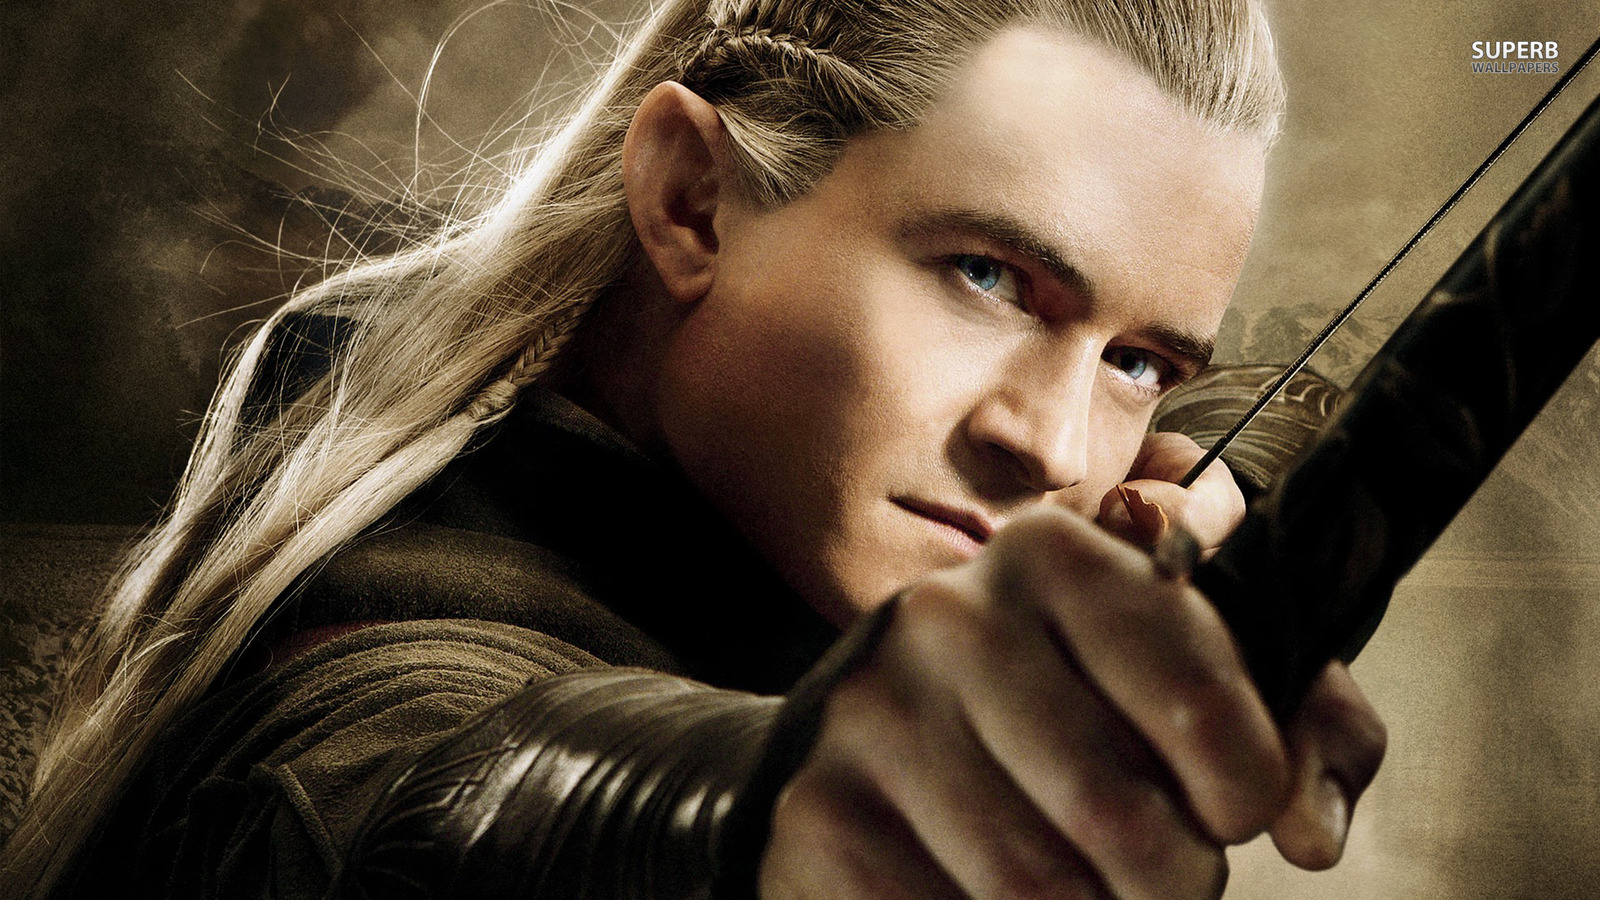 Lee Pace The Fall Wallpaper Orlando Bloom Bilder Legolas Hd Hintergrund And Background